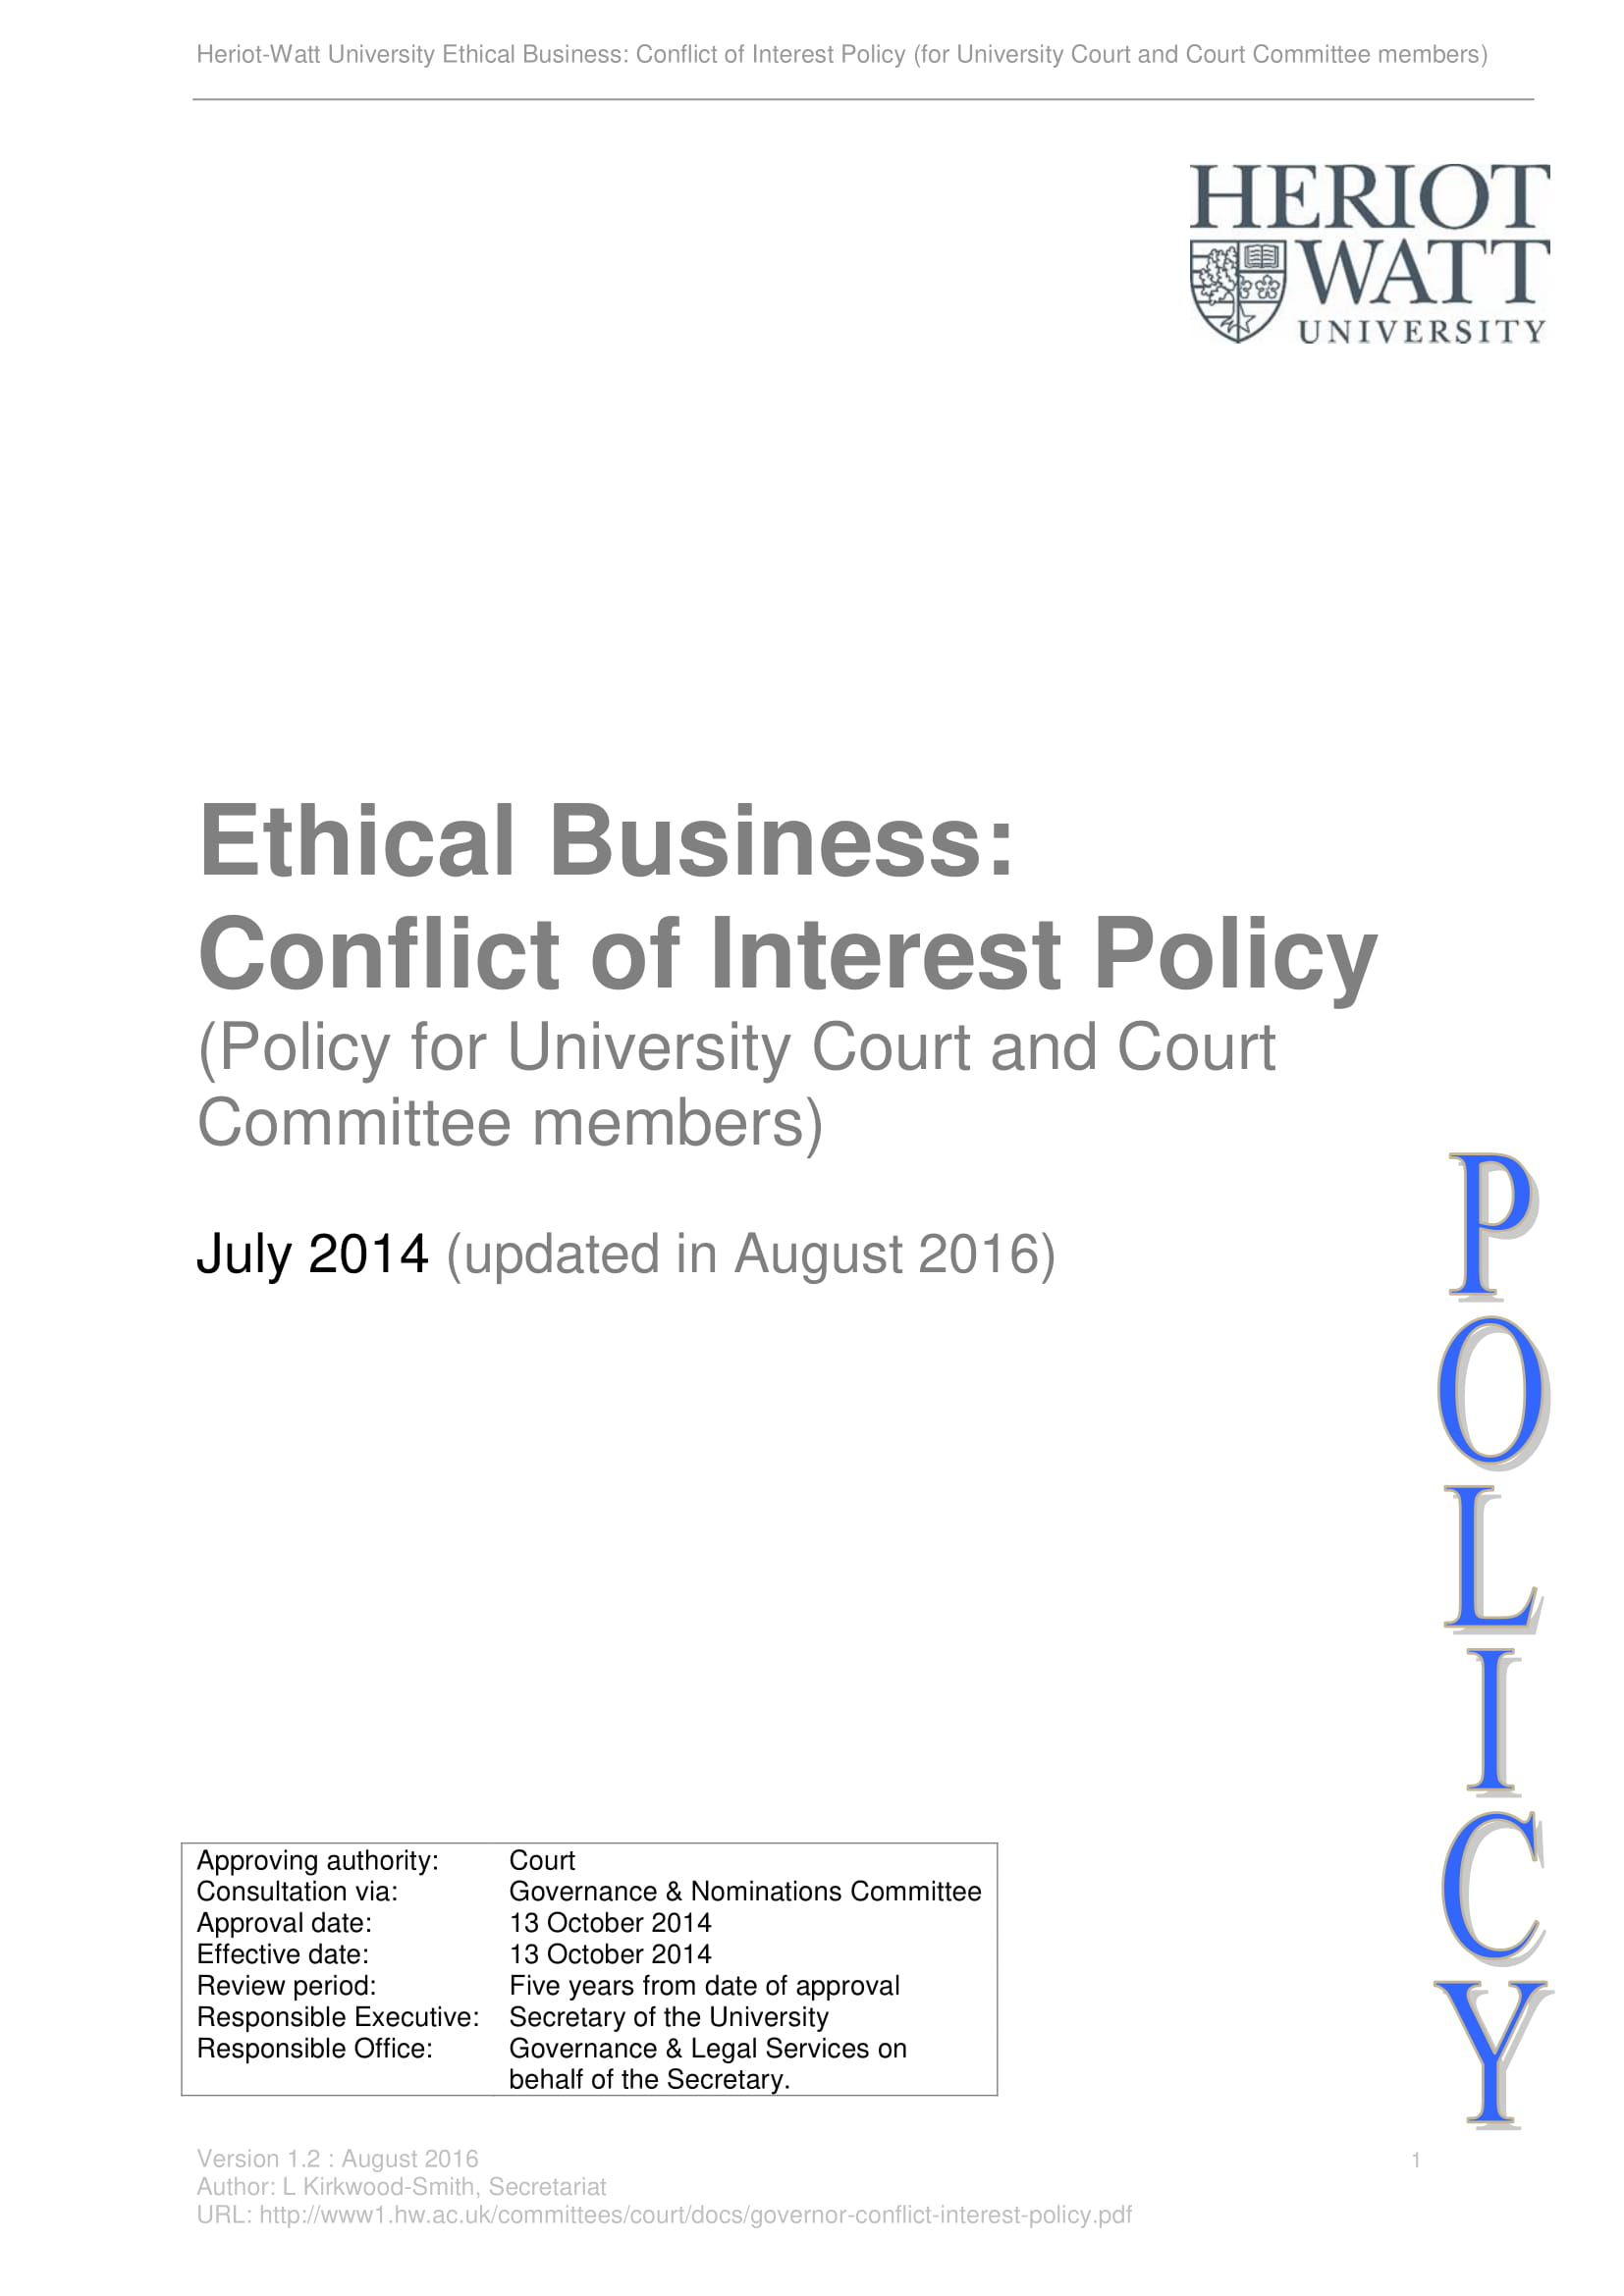 14+ Conflict of Interest Policy Examples - PDF